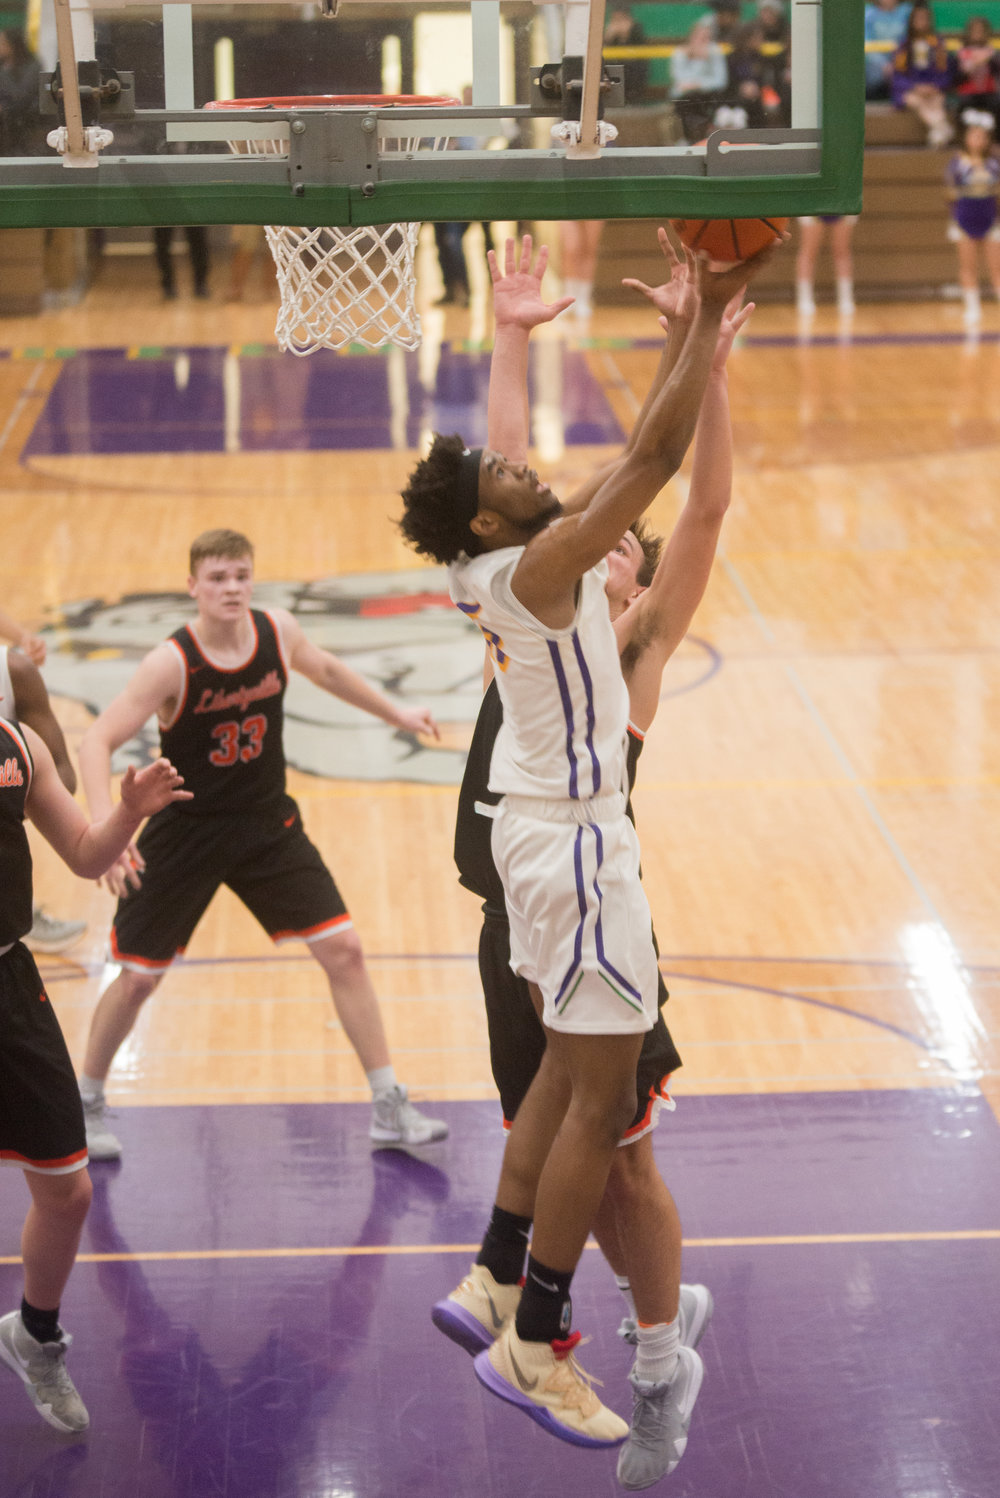 38-Bryant-Brown-shoots-a-reverse-vs-Libertyville.jpg